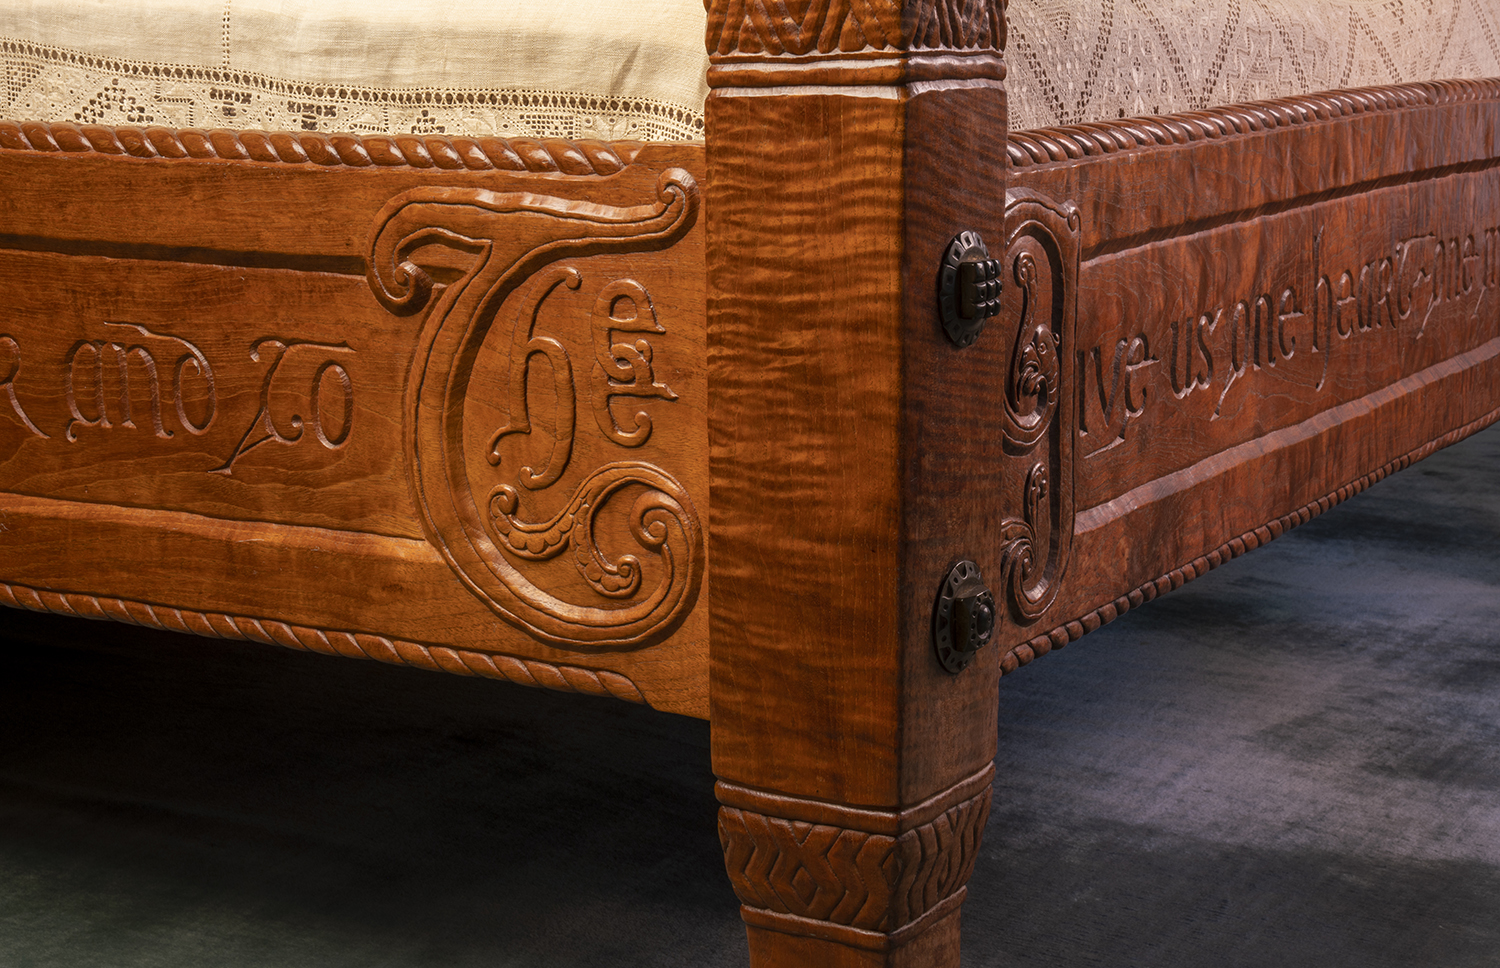 Figure 19: A corner of the master bed showing the intricate carving of the quotation around three sides.